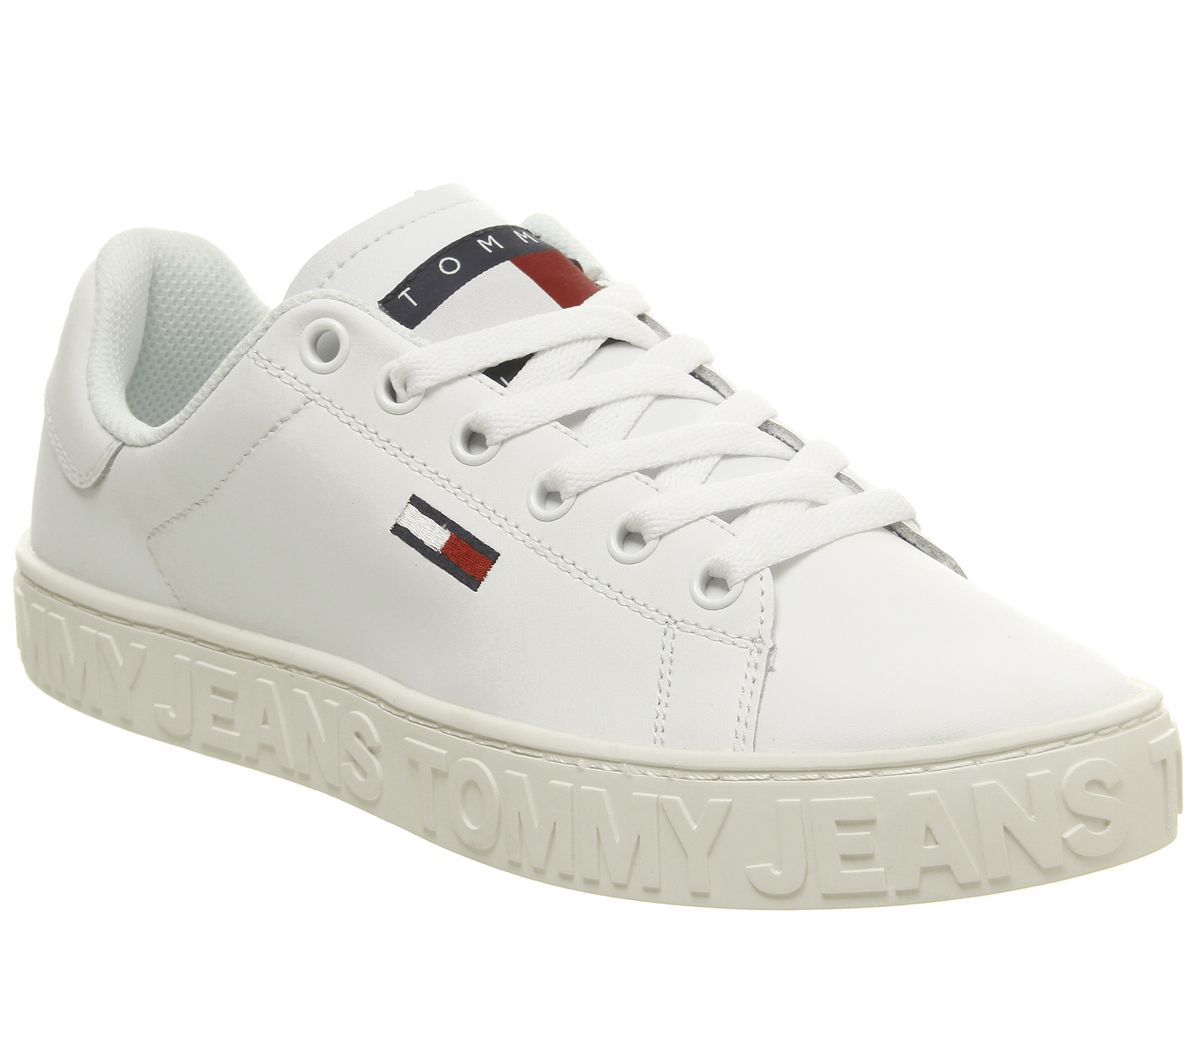 2430c6462 Tommy Hilfiger Jaz Trainers White - Hers trainers